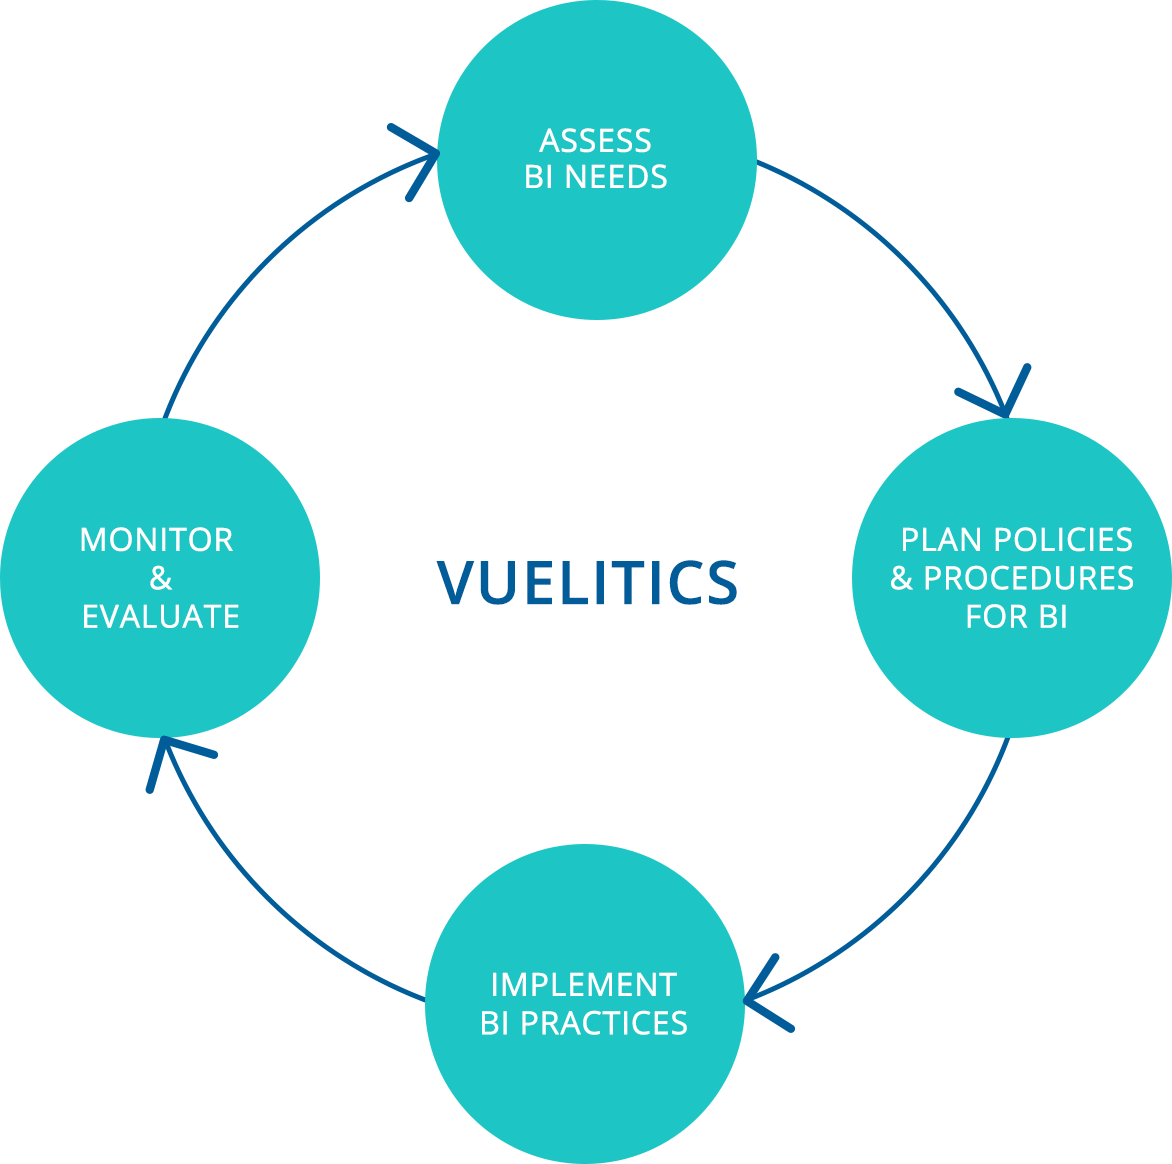 Vuelitics – Recognised as one of the top leading business intelligence companies in the Delaware, USA. We provide data analytics solutions to the various industries and businesses across the USA. Request a demo today.